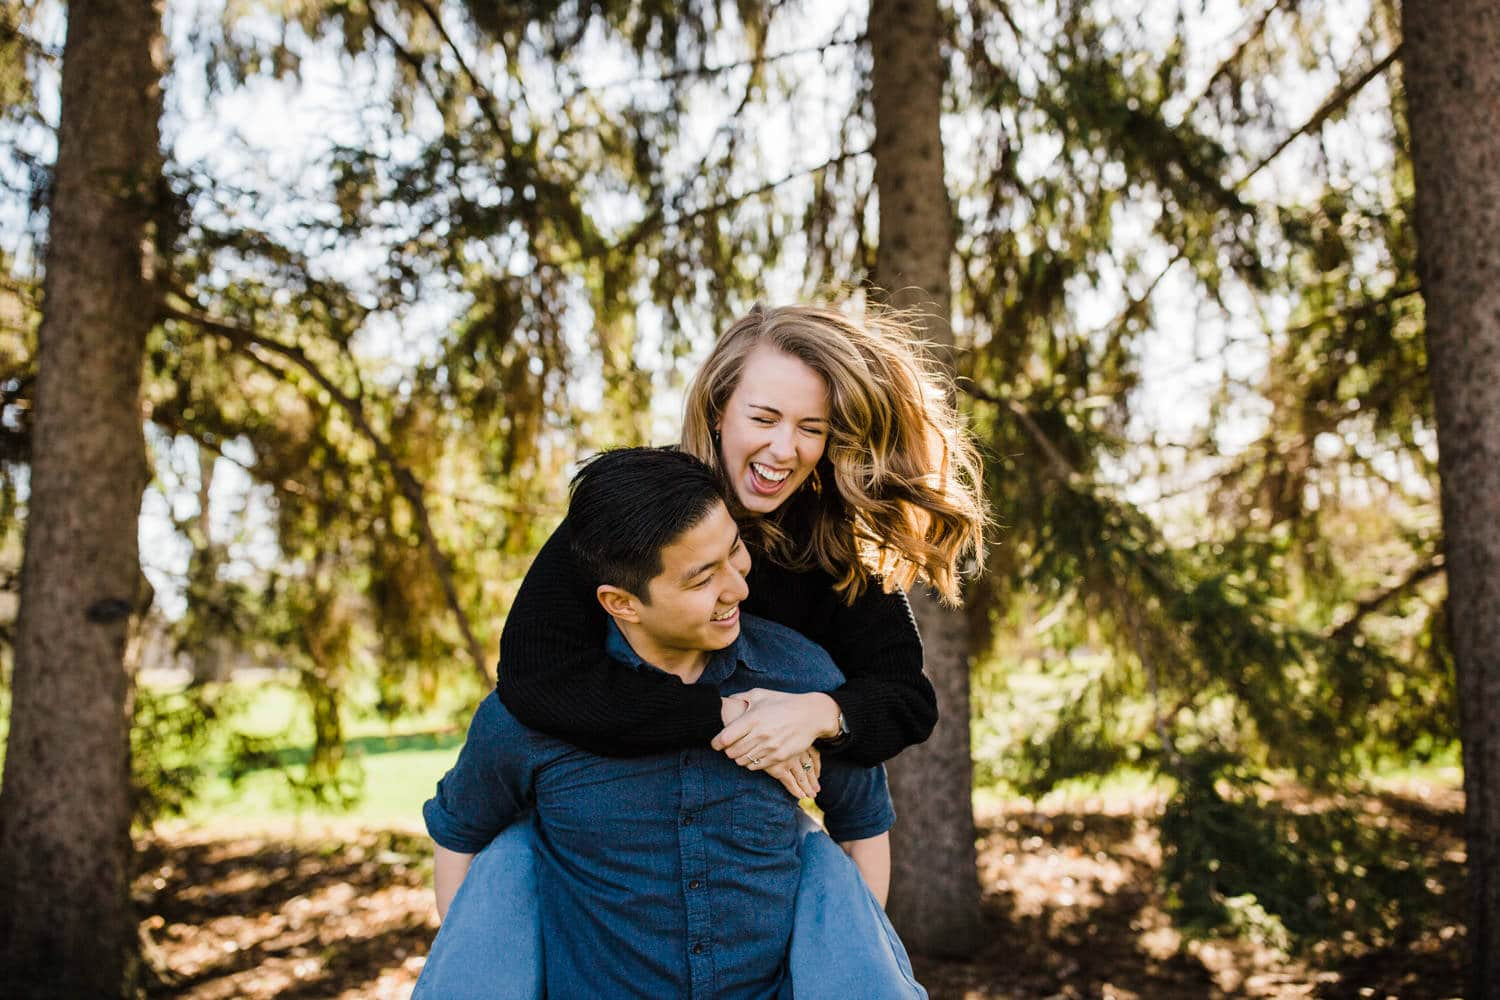 man gives woman a piggy back ride - ottawa engagement session